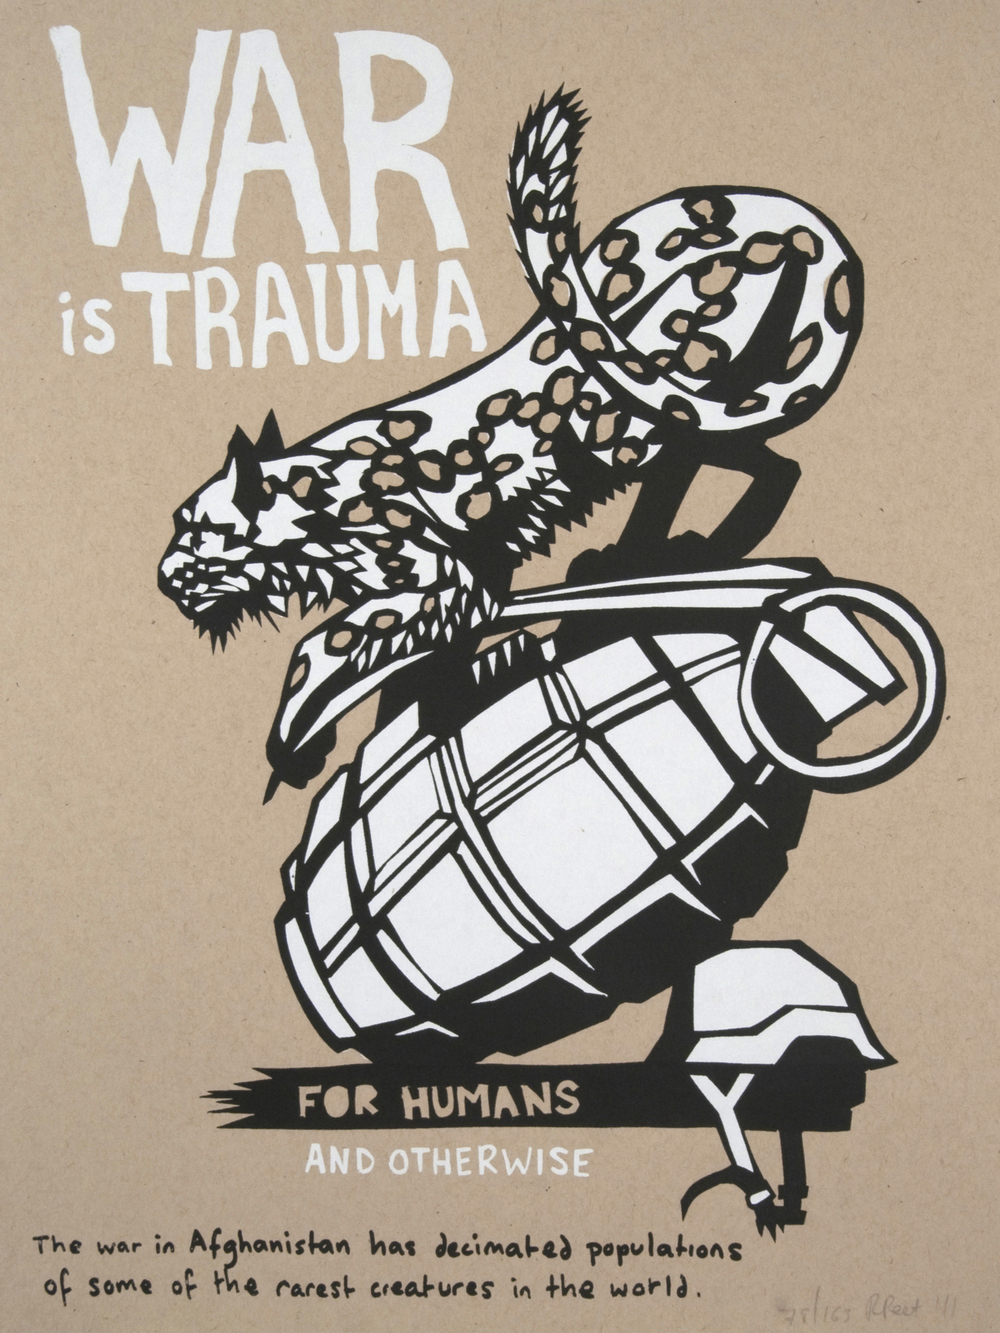 13 War is Trauma for Humans and Otherwise by Roger Peet.jpg